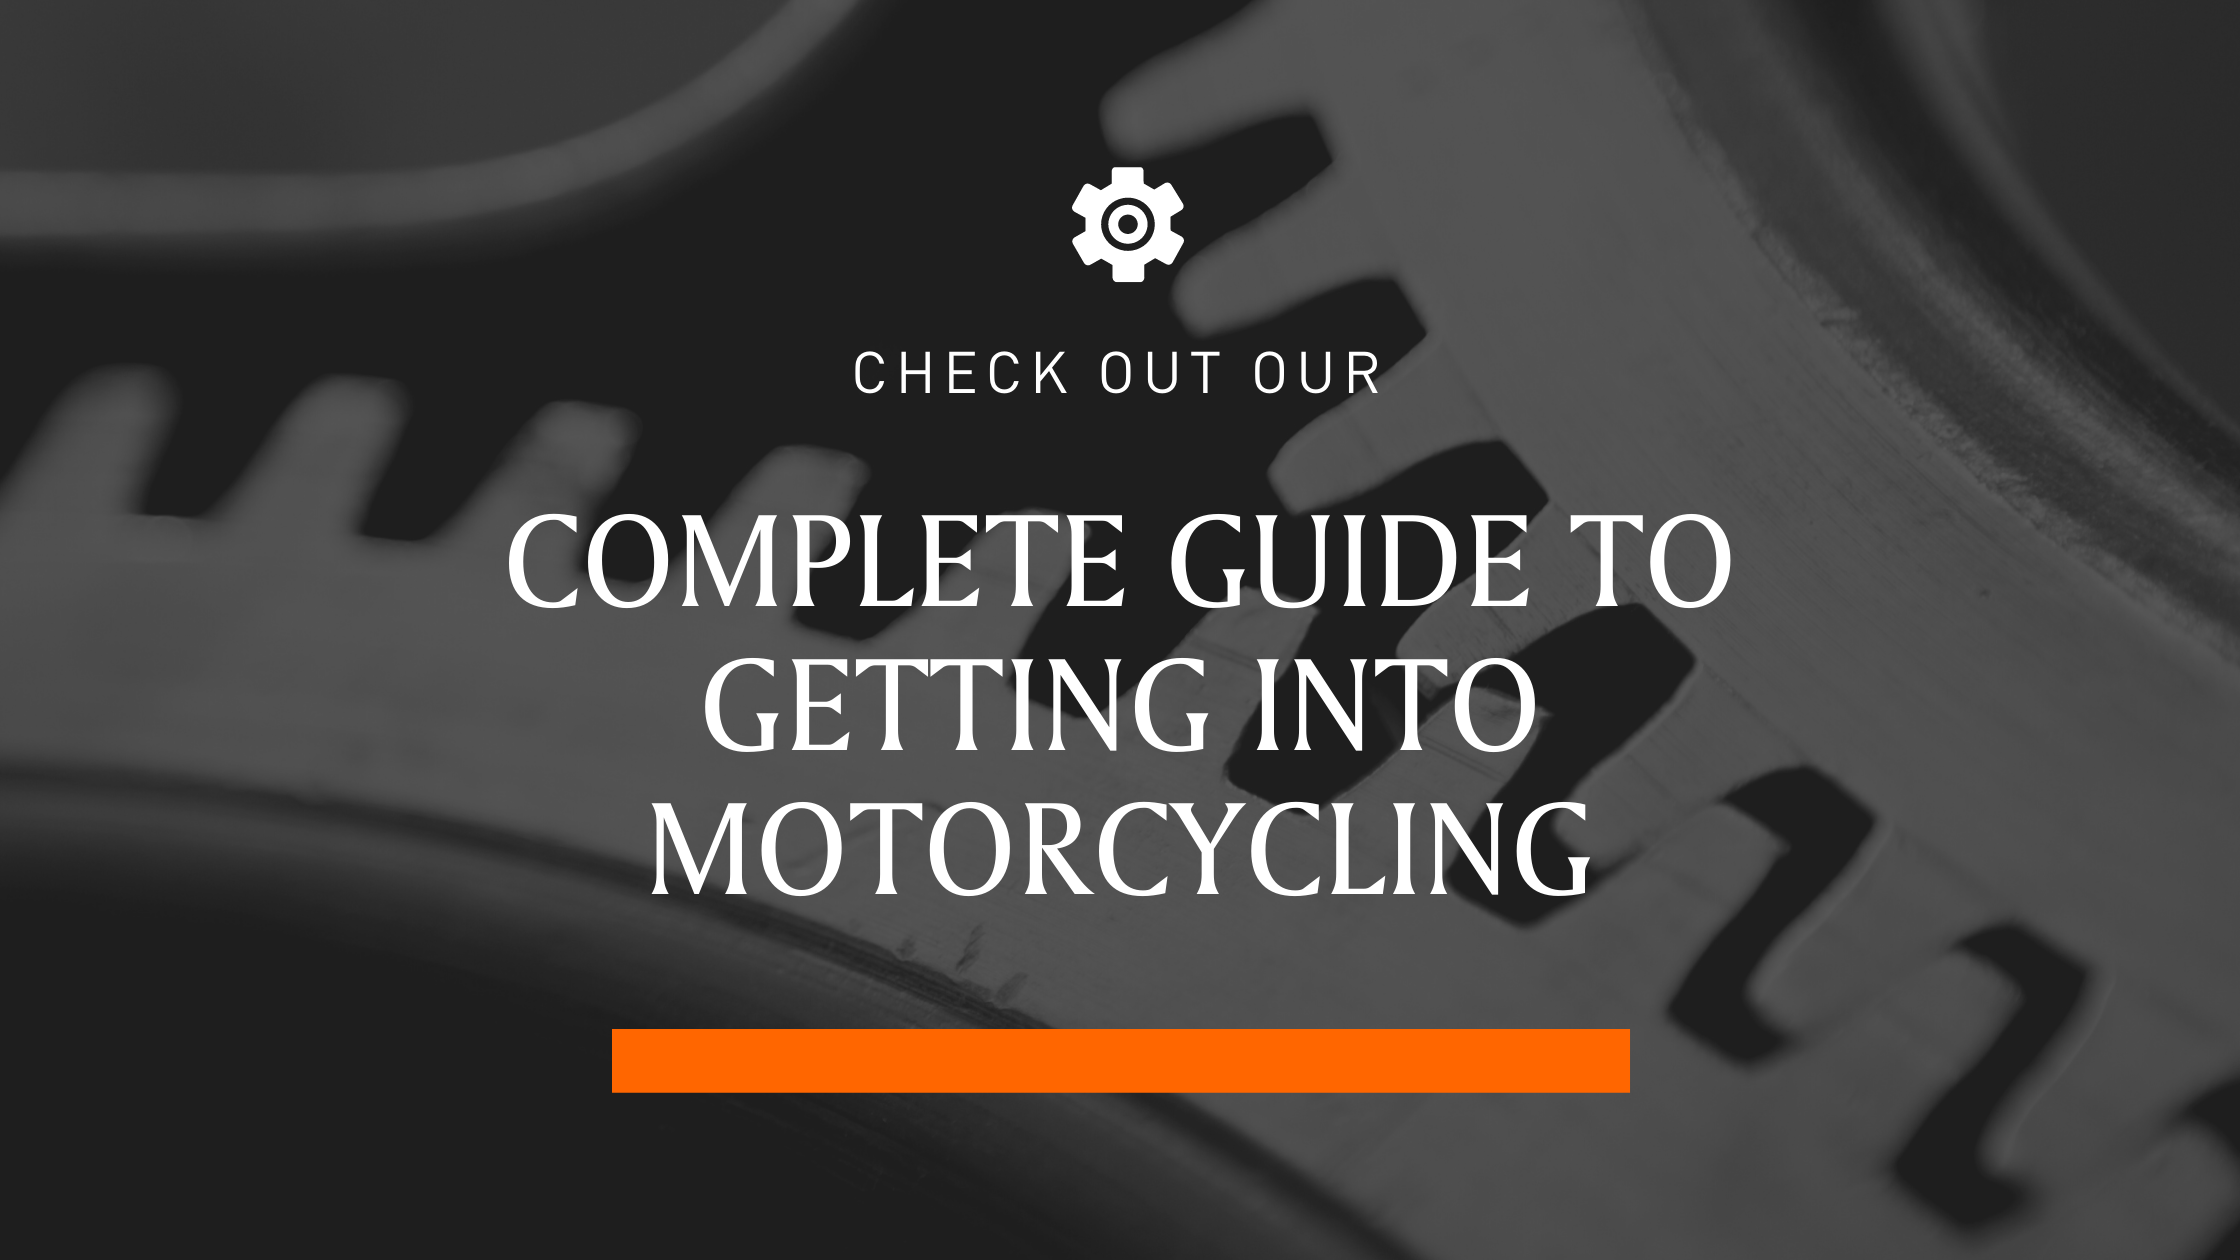 Complete Guide to Getting Into Motorcycling